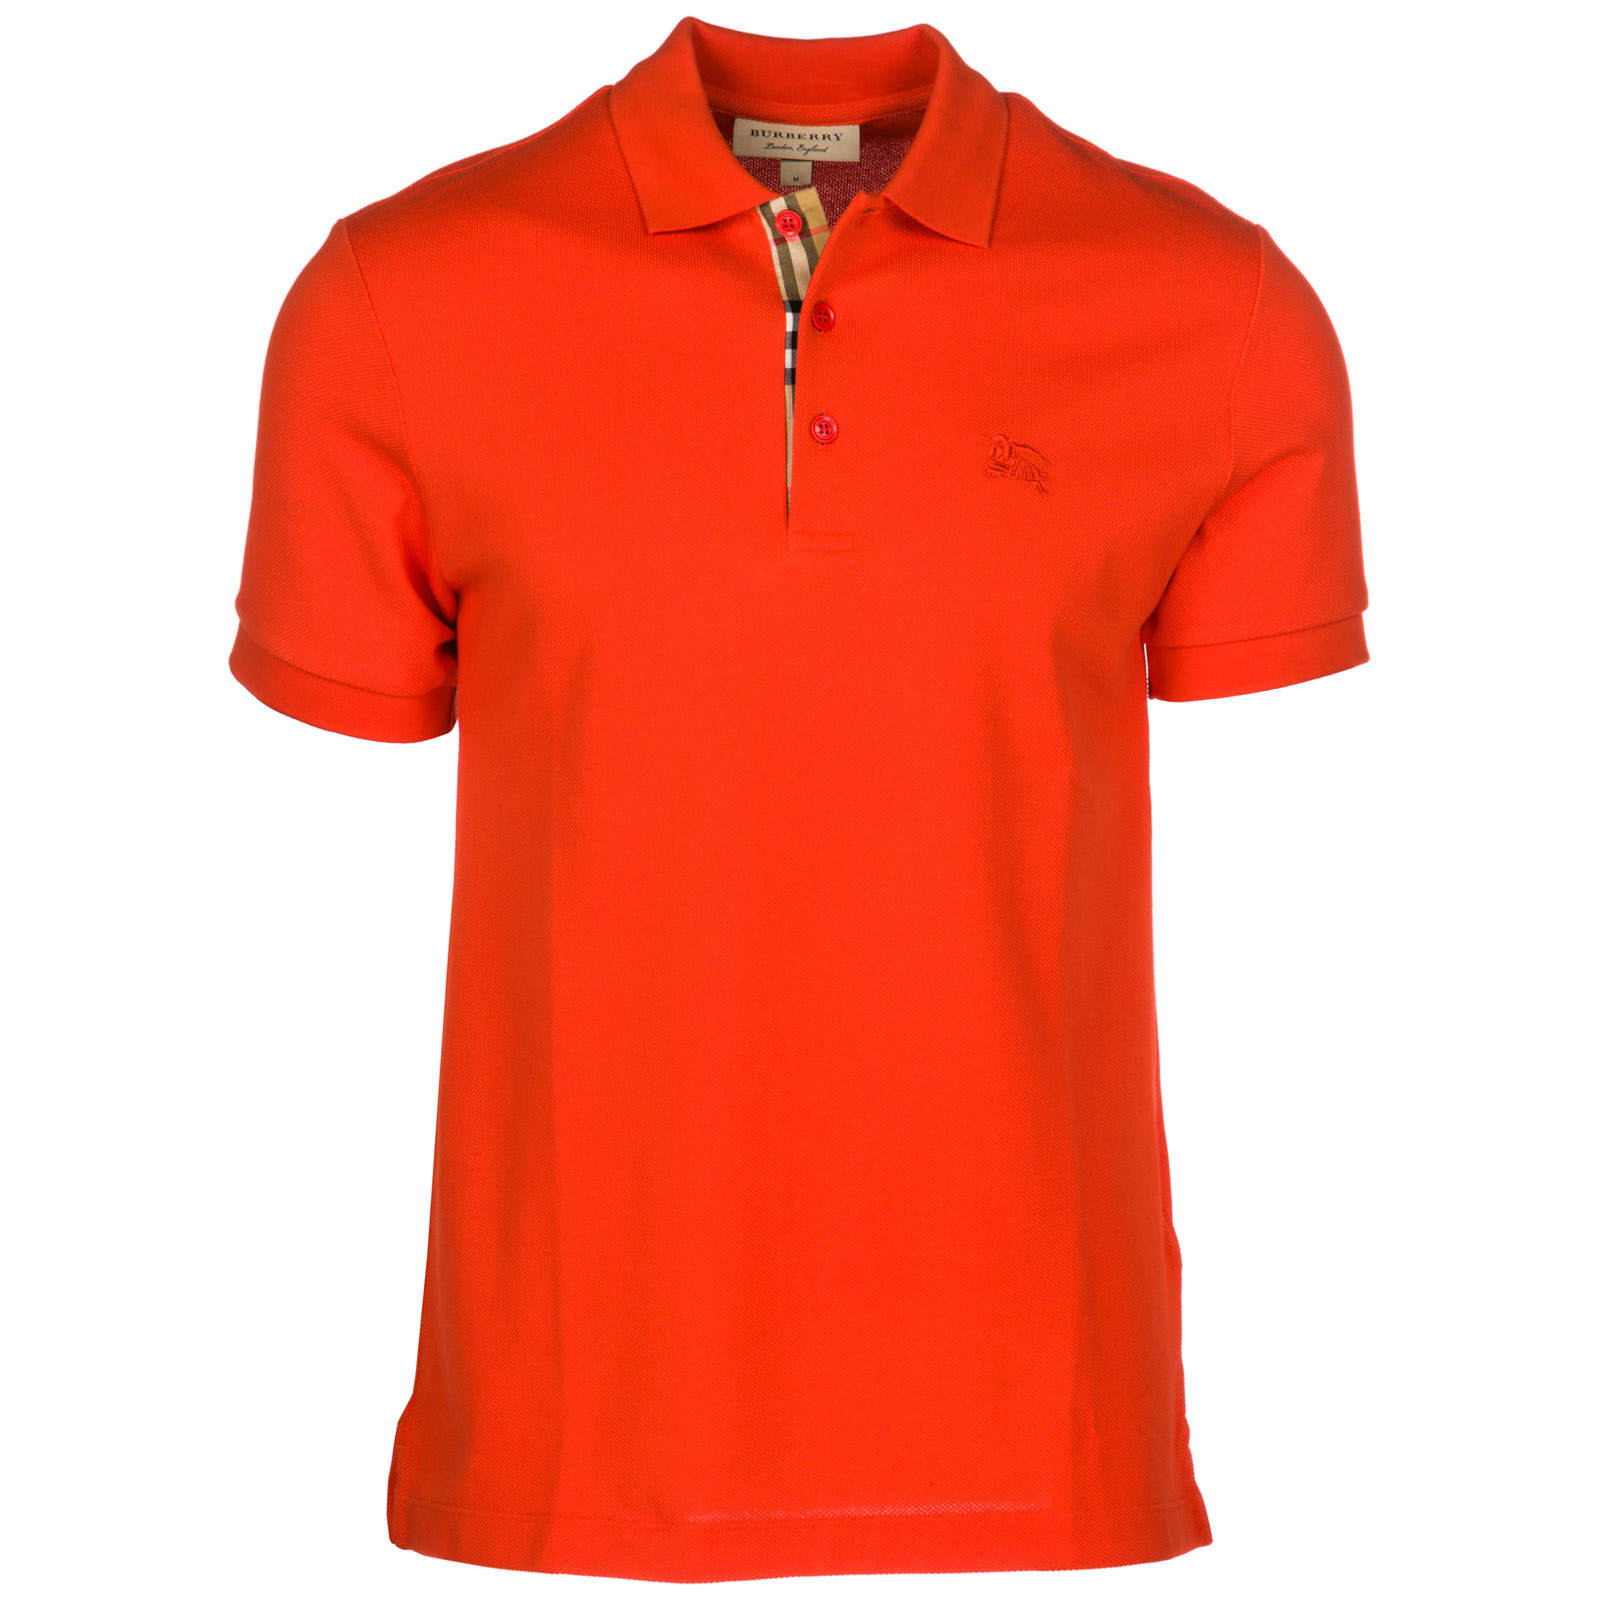 73bfd11b4441 Polo t-shirt Burberry Hartford 80009141 bright red